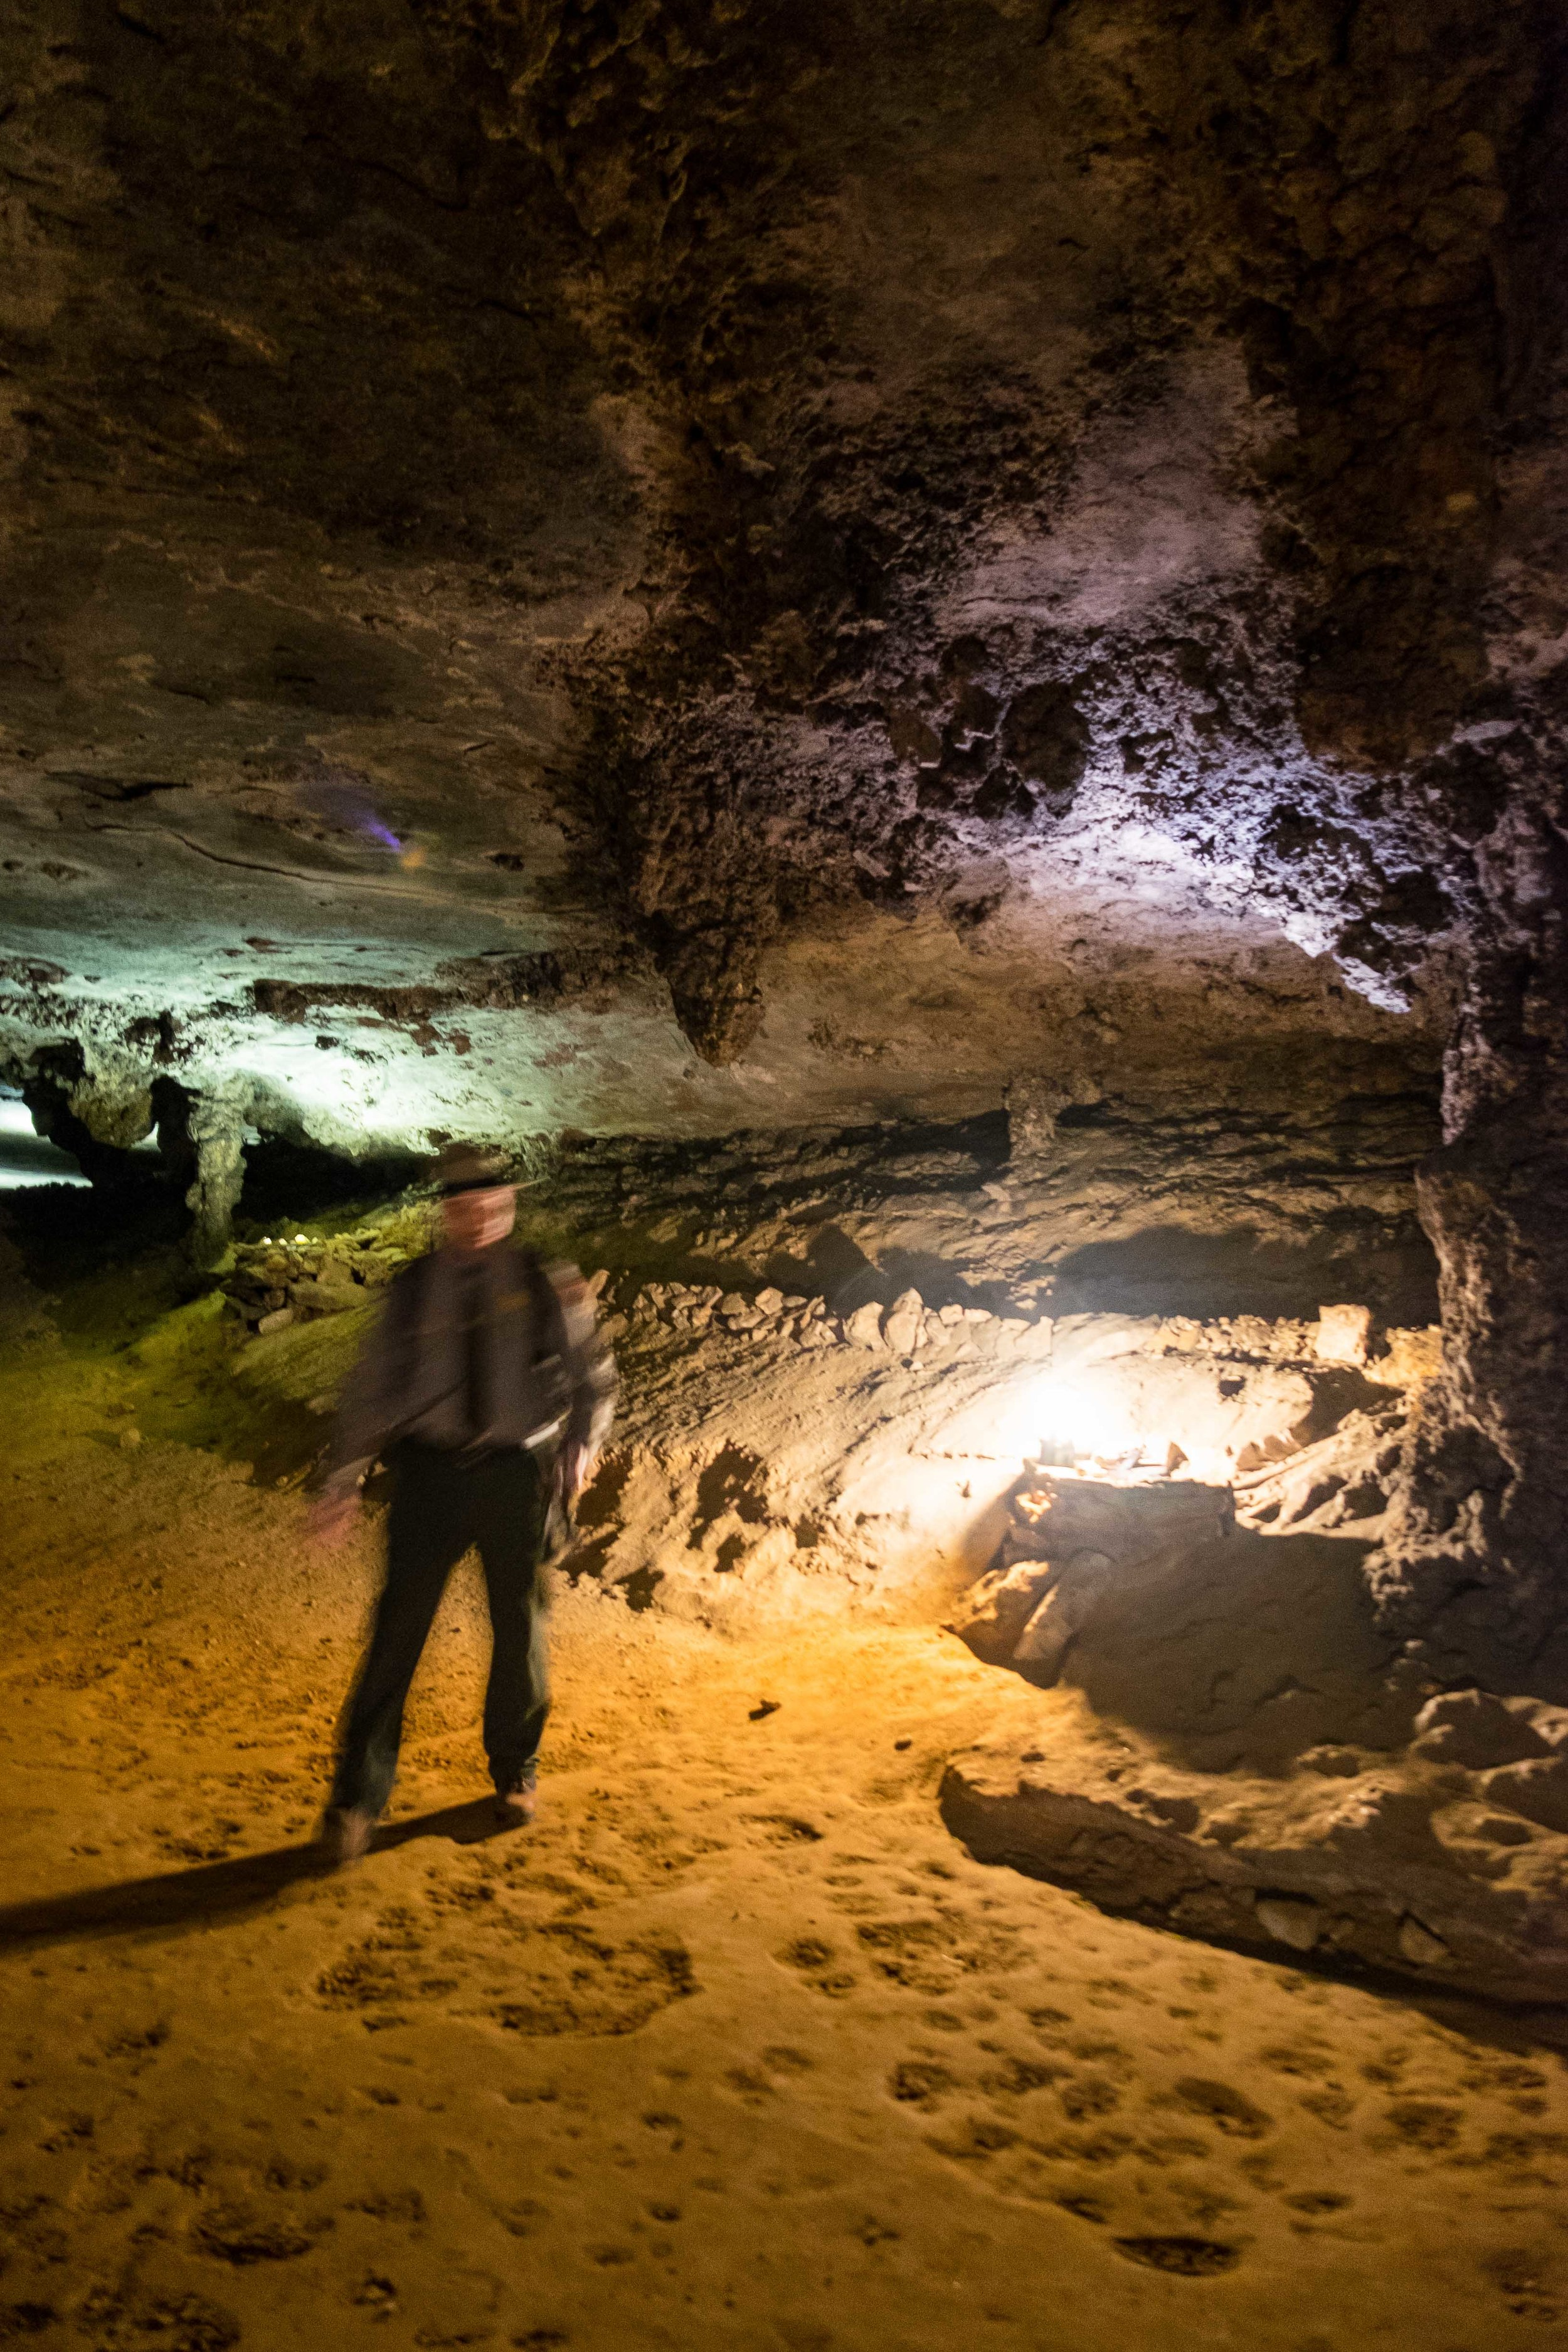 There are over 400 miles of trails to this cave, and we explored just a tiny bit of them.